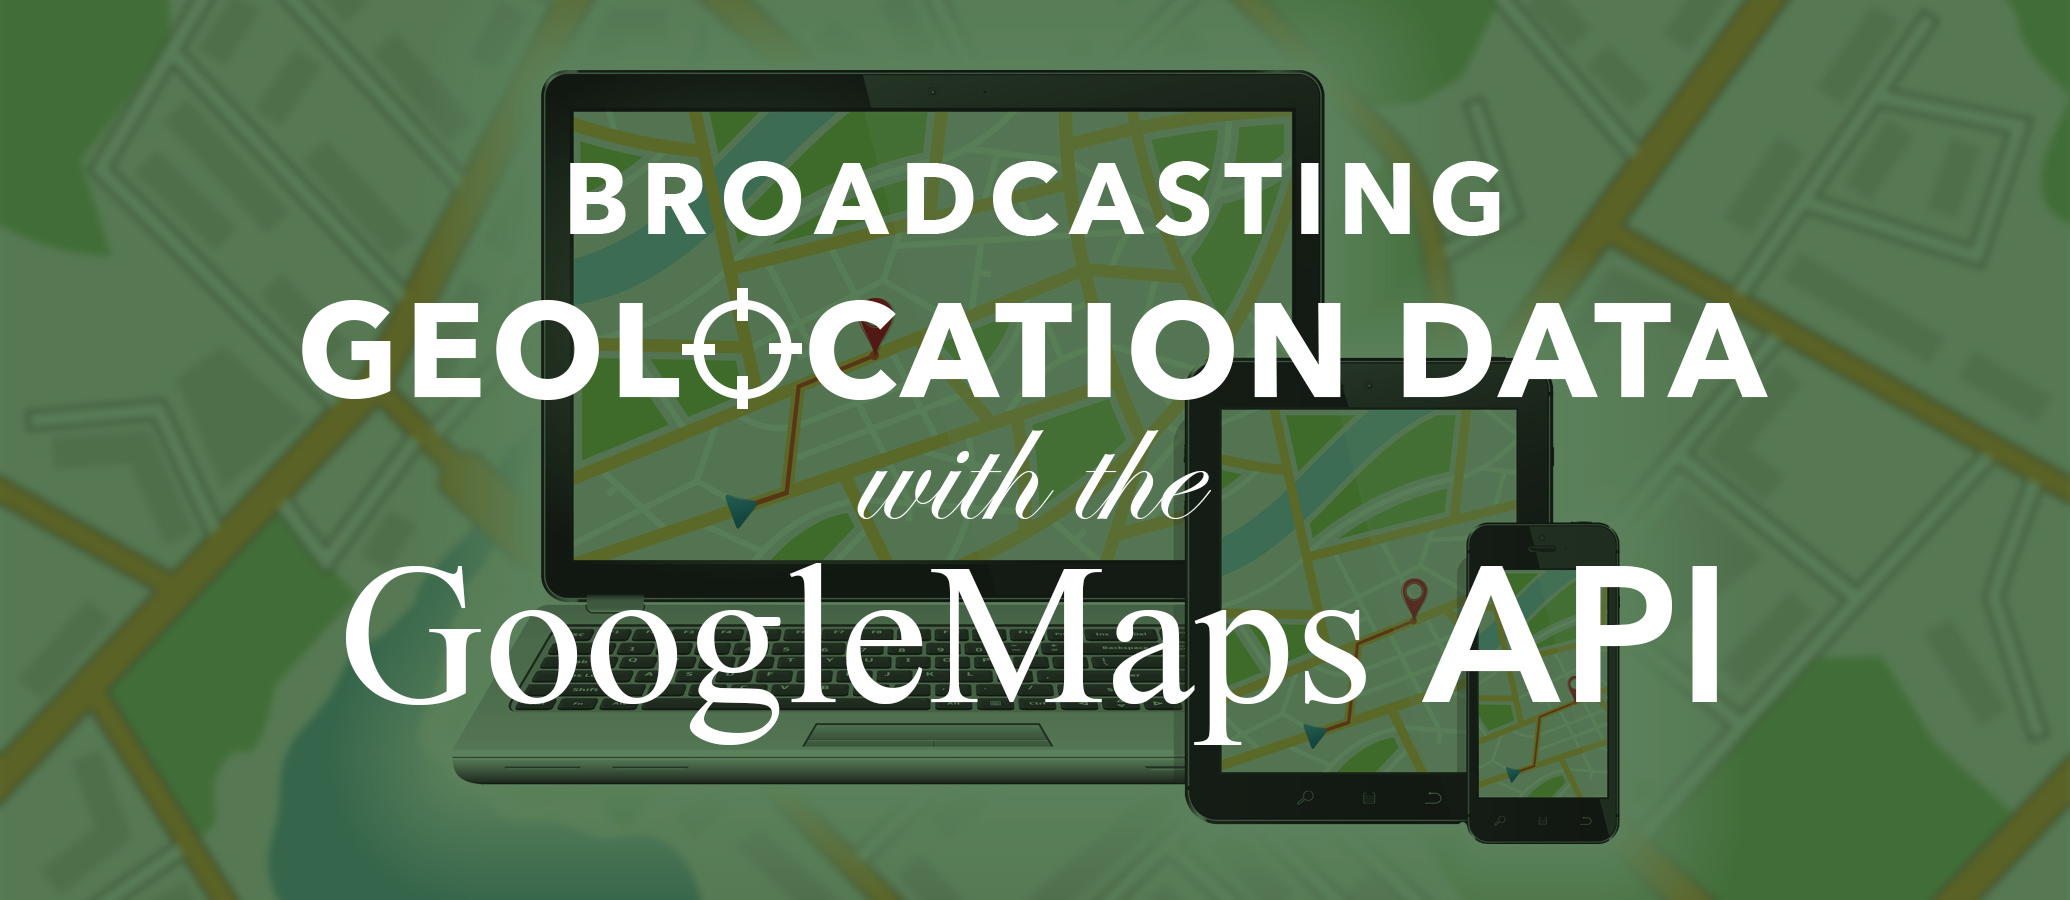 Google Maps Geolocation Tracking in Realtime with JavaScript